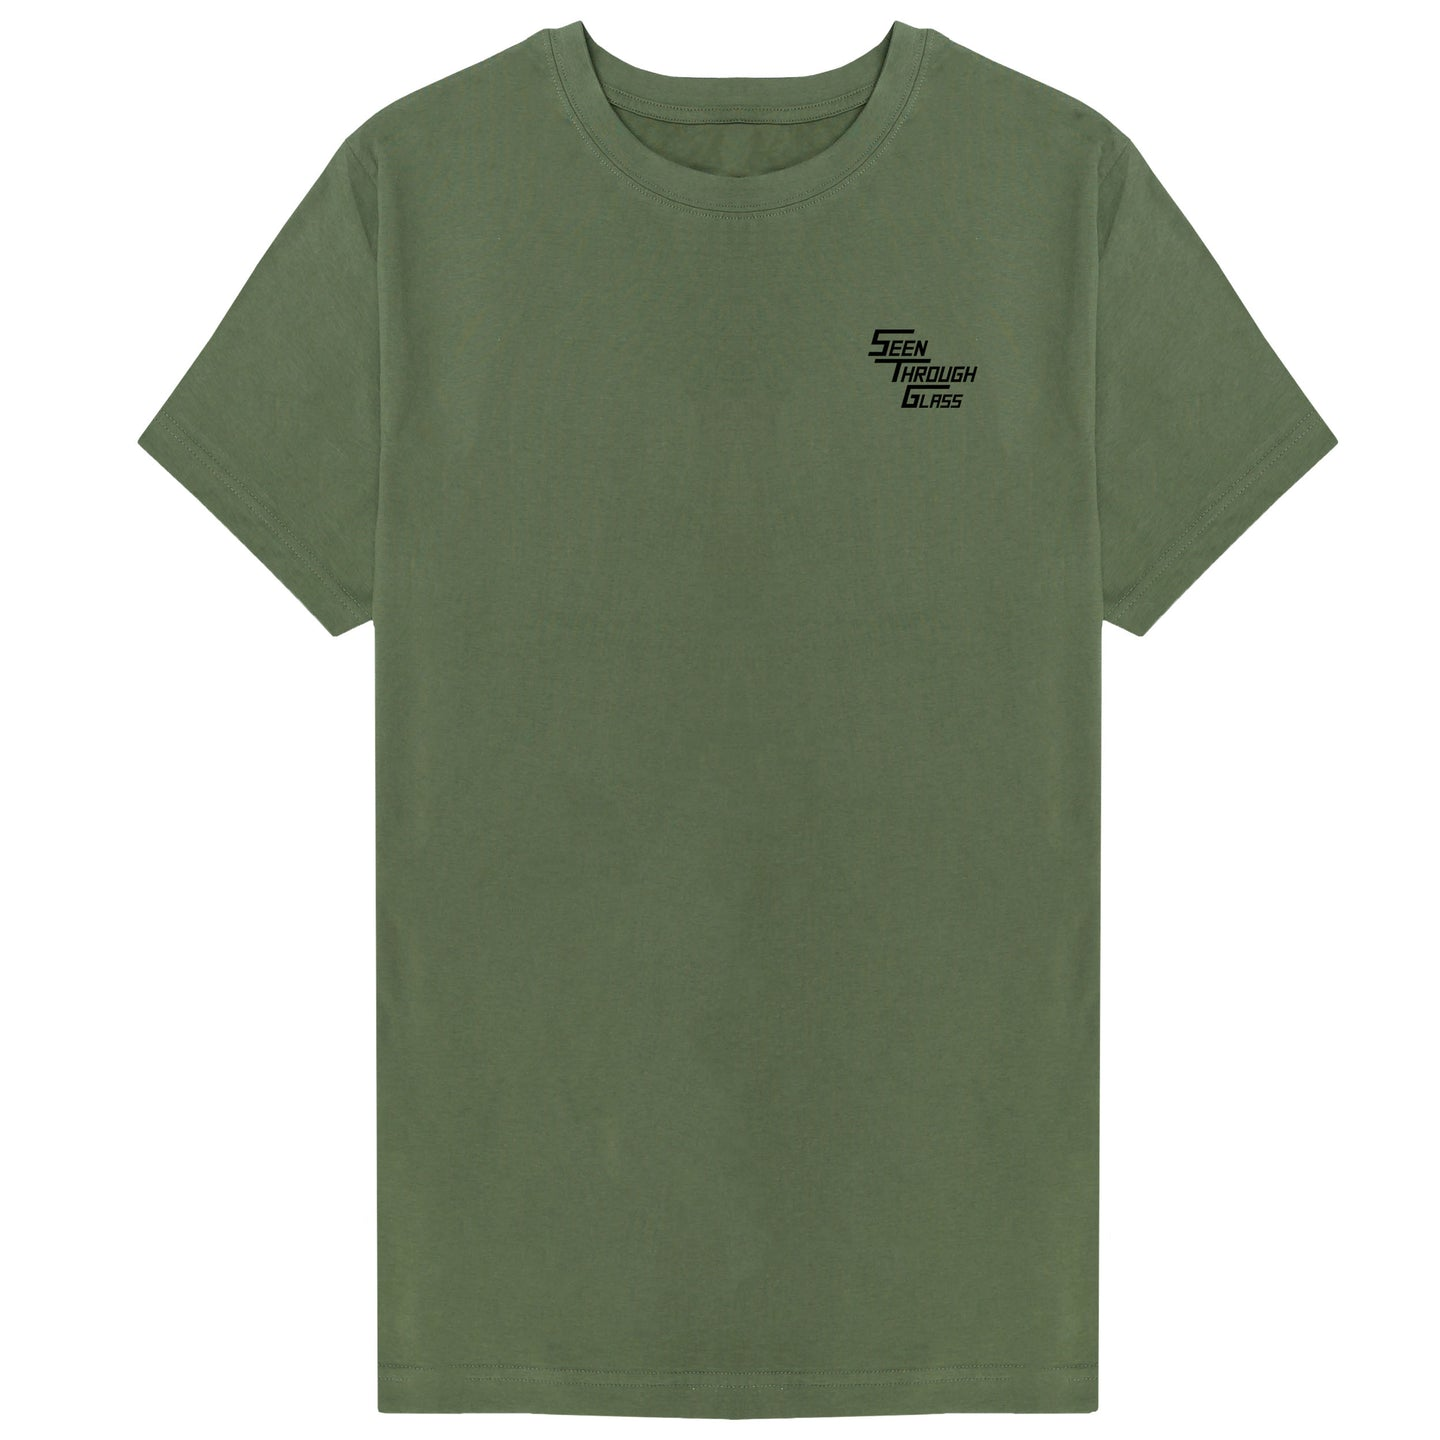 Seen Through Glass T-Shirt - Khaki